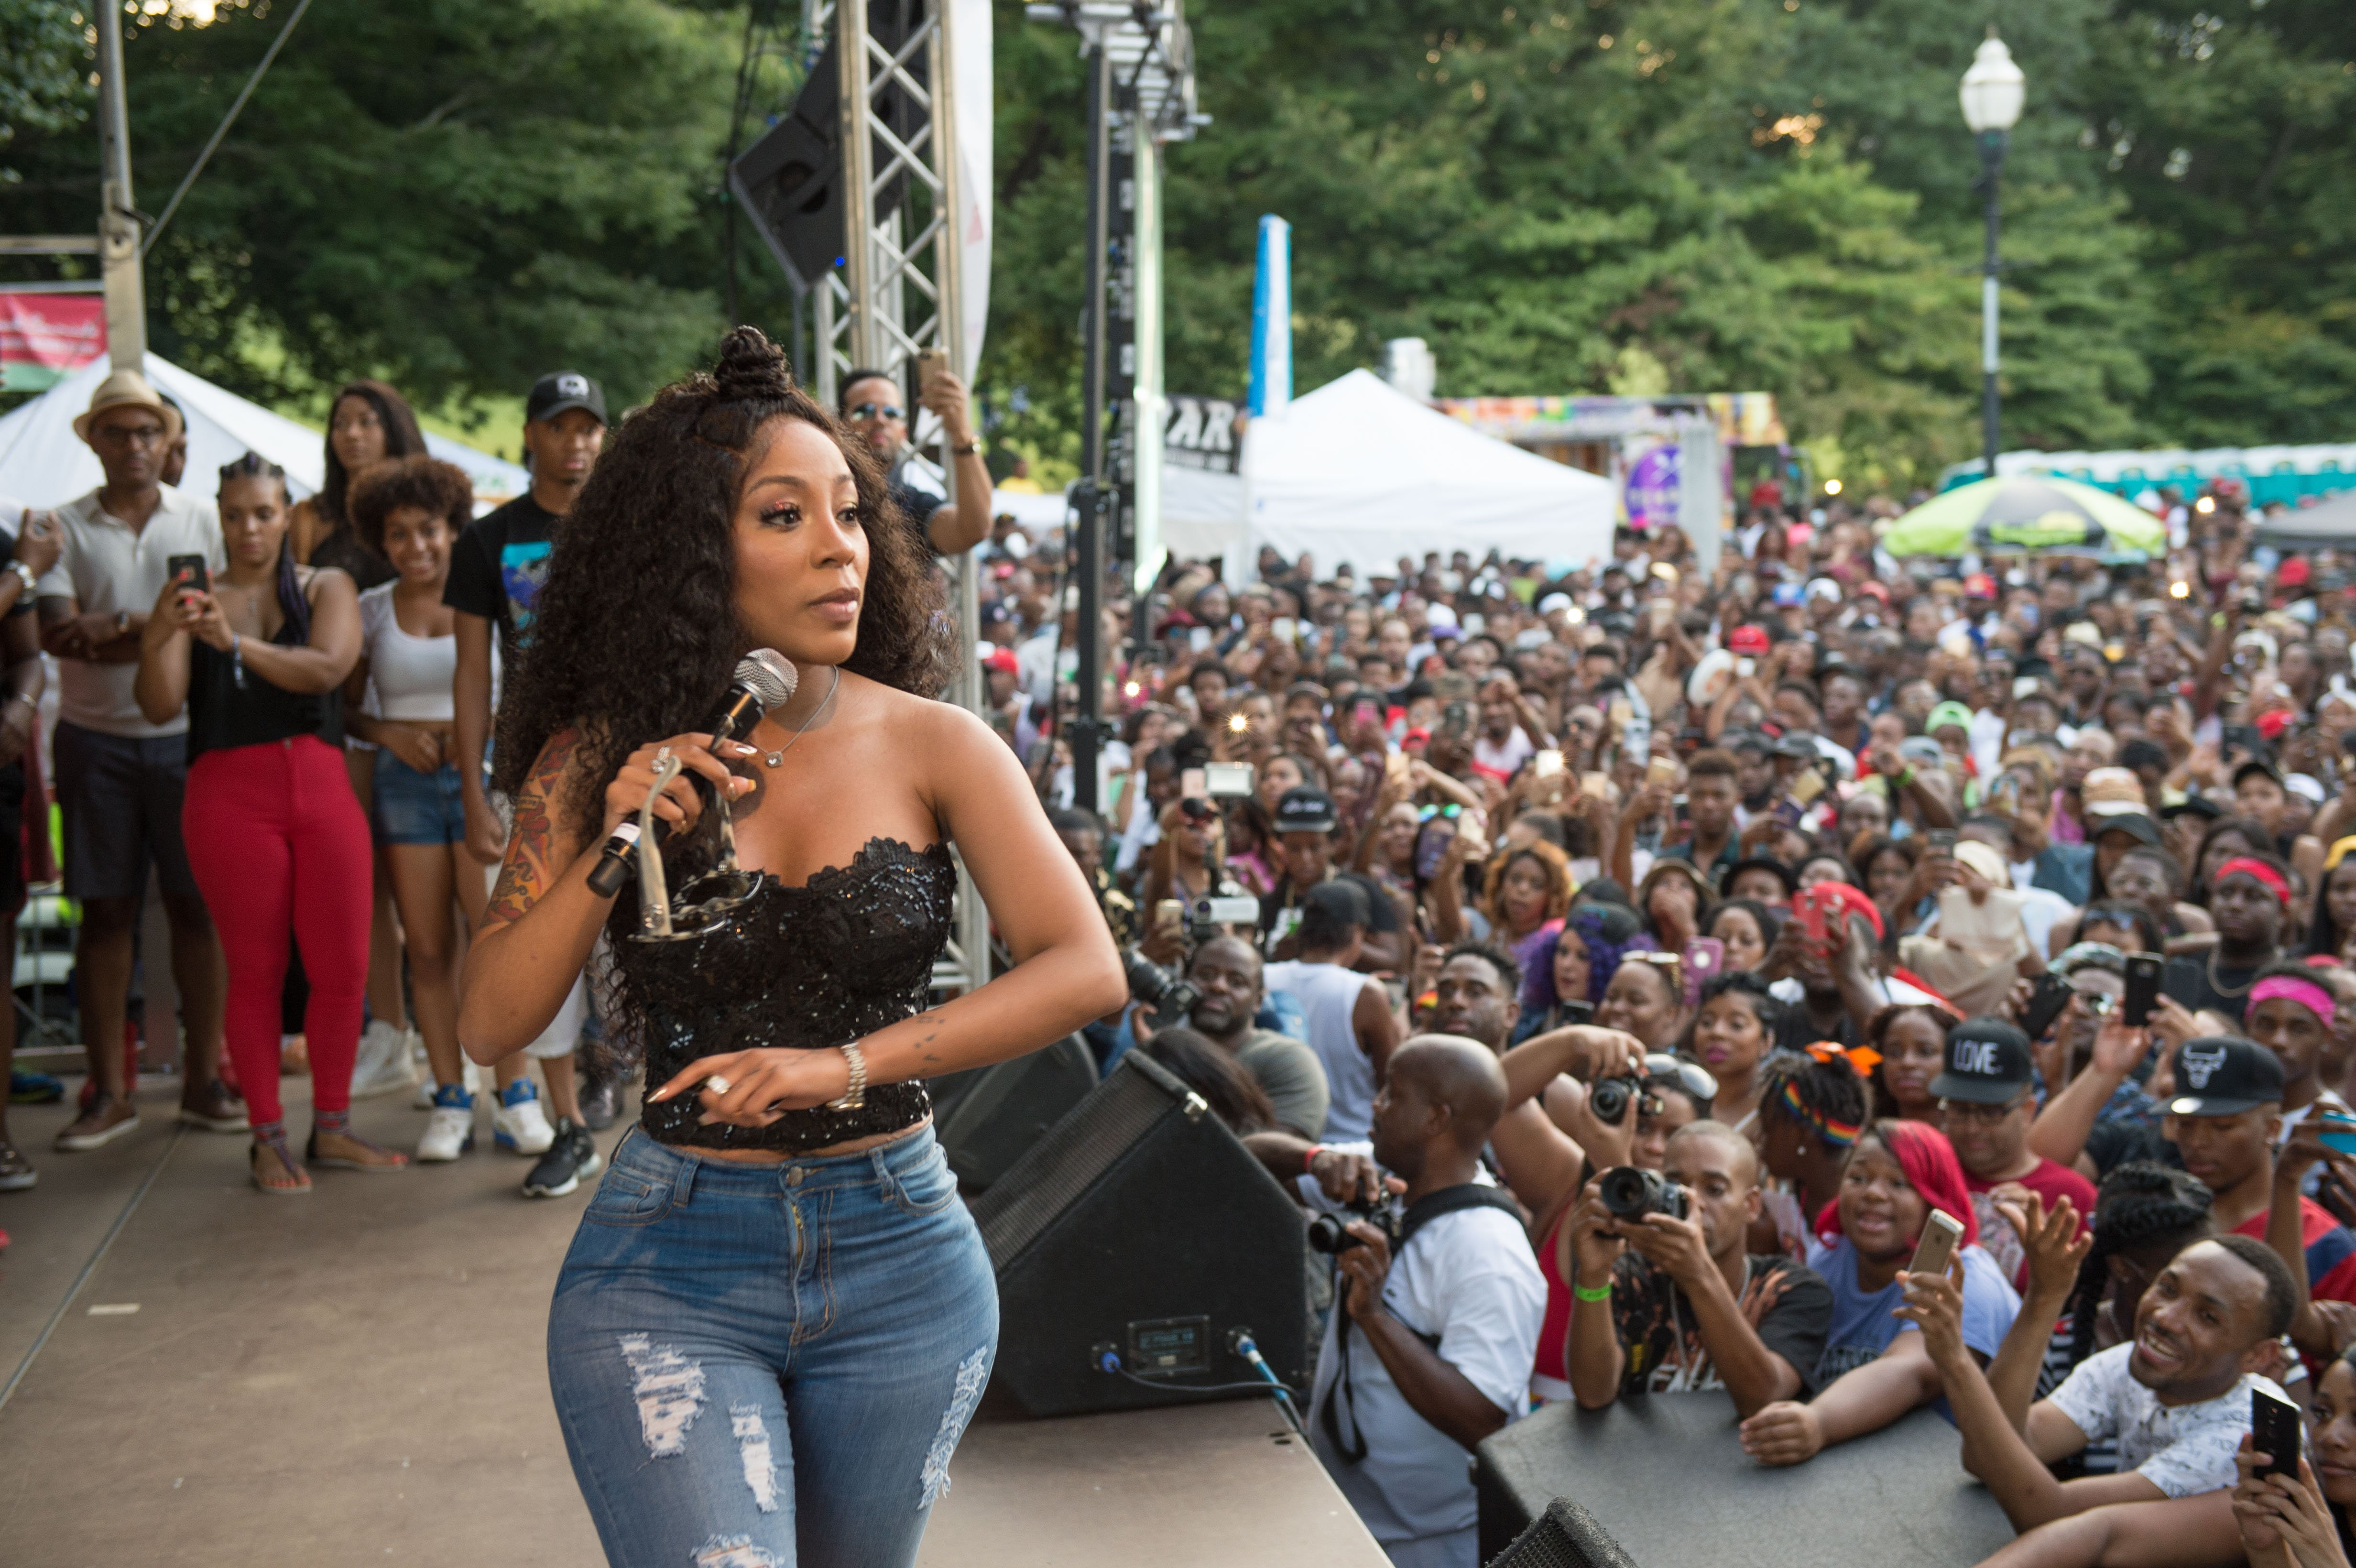 K. Michelle on stage during the Pure Heat Community Festival in Atlanta, Georgia on Sept. 4, 2016 | Photo: Getty Images